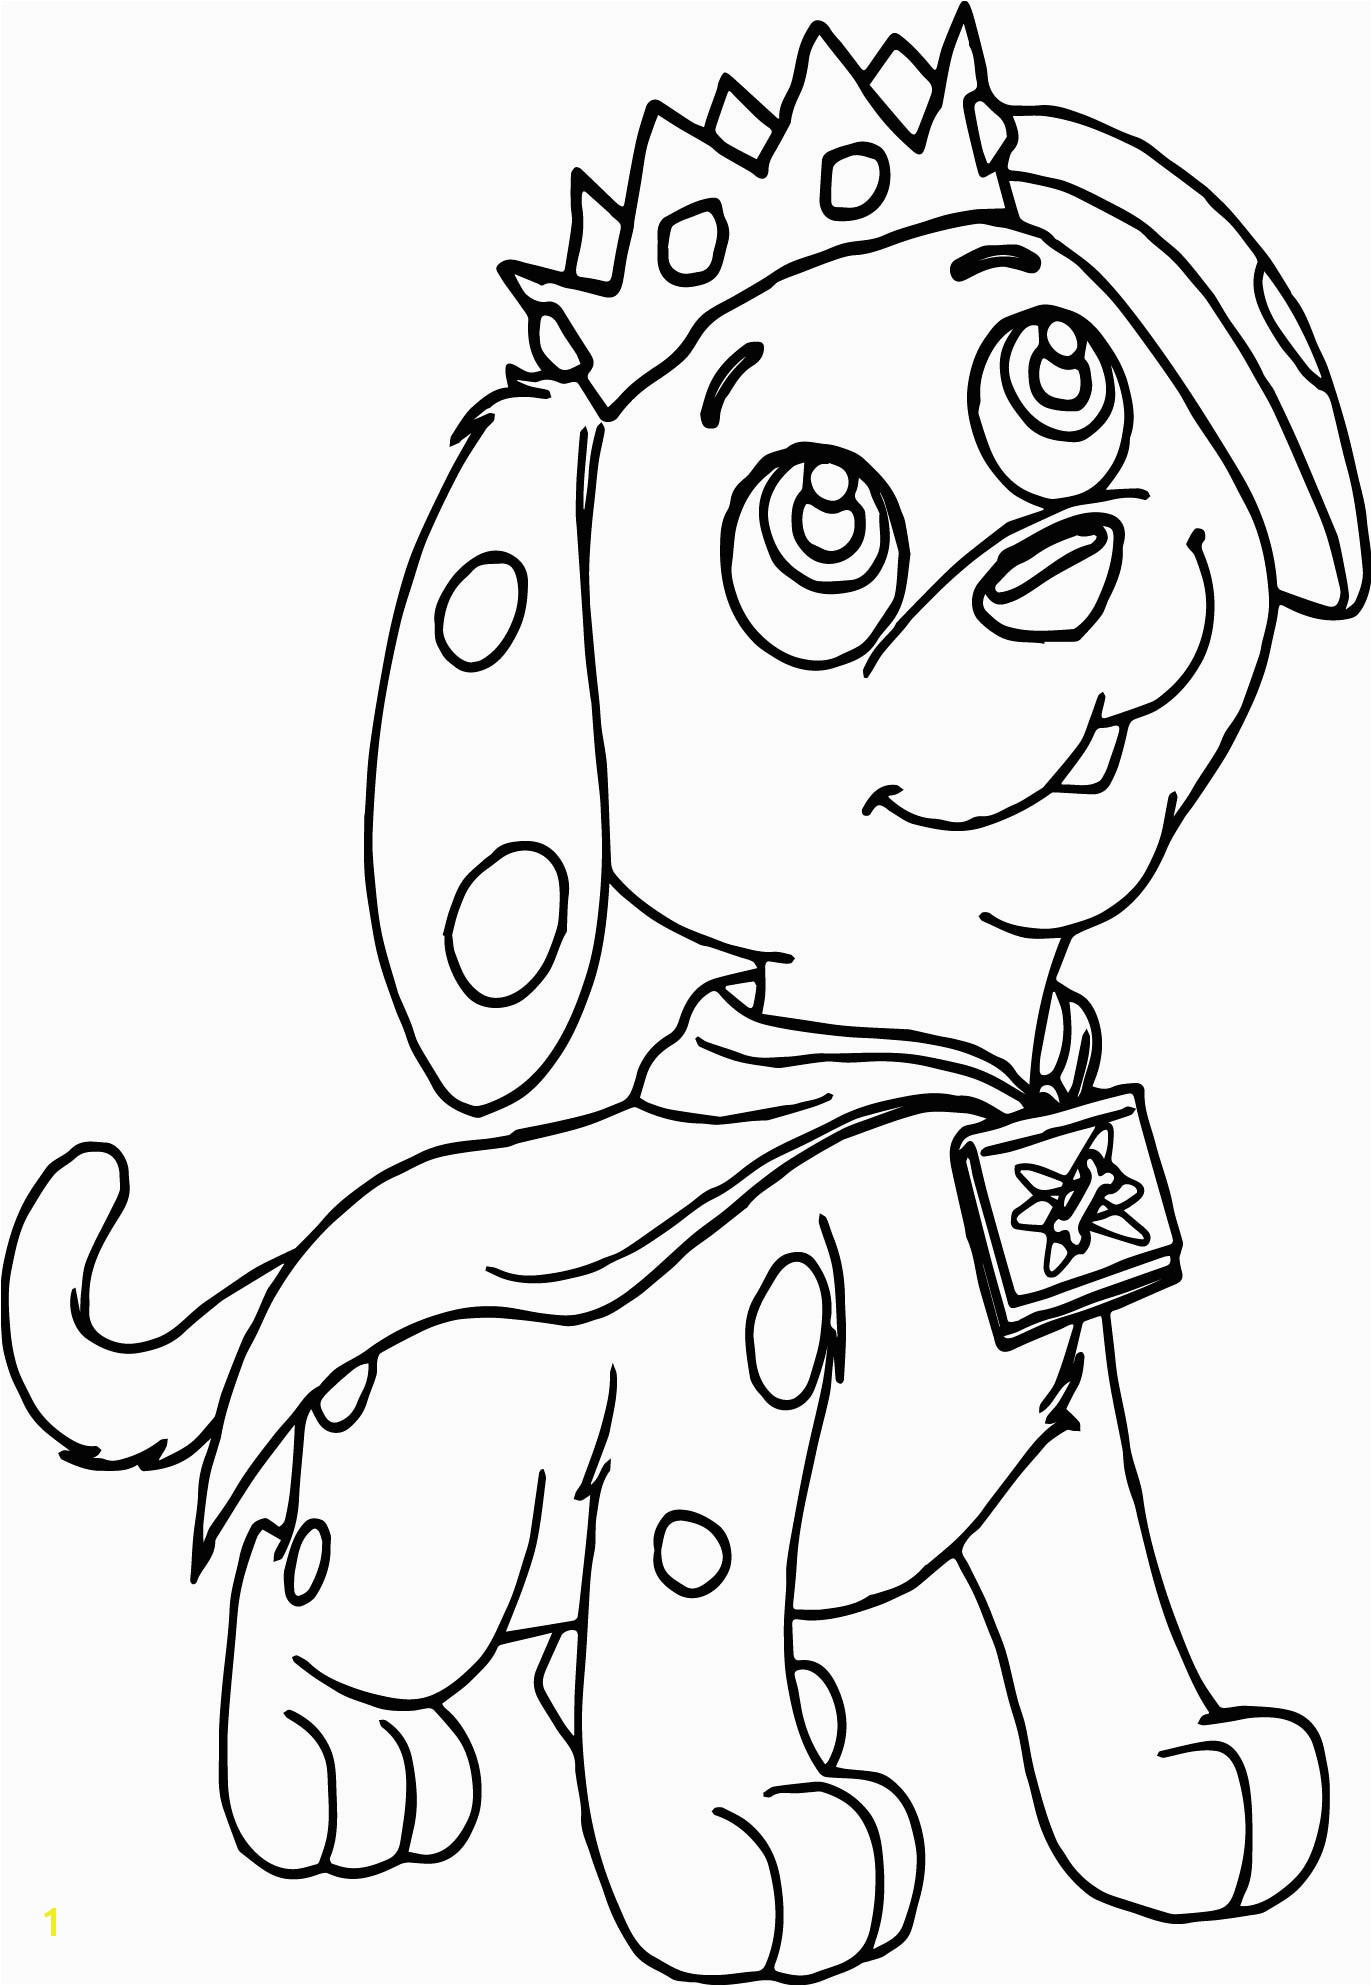 Exciting Woofster Coloring Pages Coloring For Snazzy Super Why Coloring Pages Inspirationa Imagination Woofster Coloring Coloring